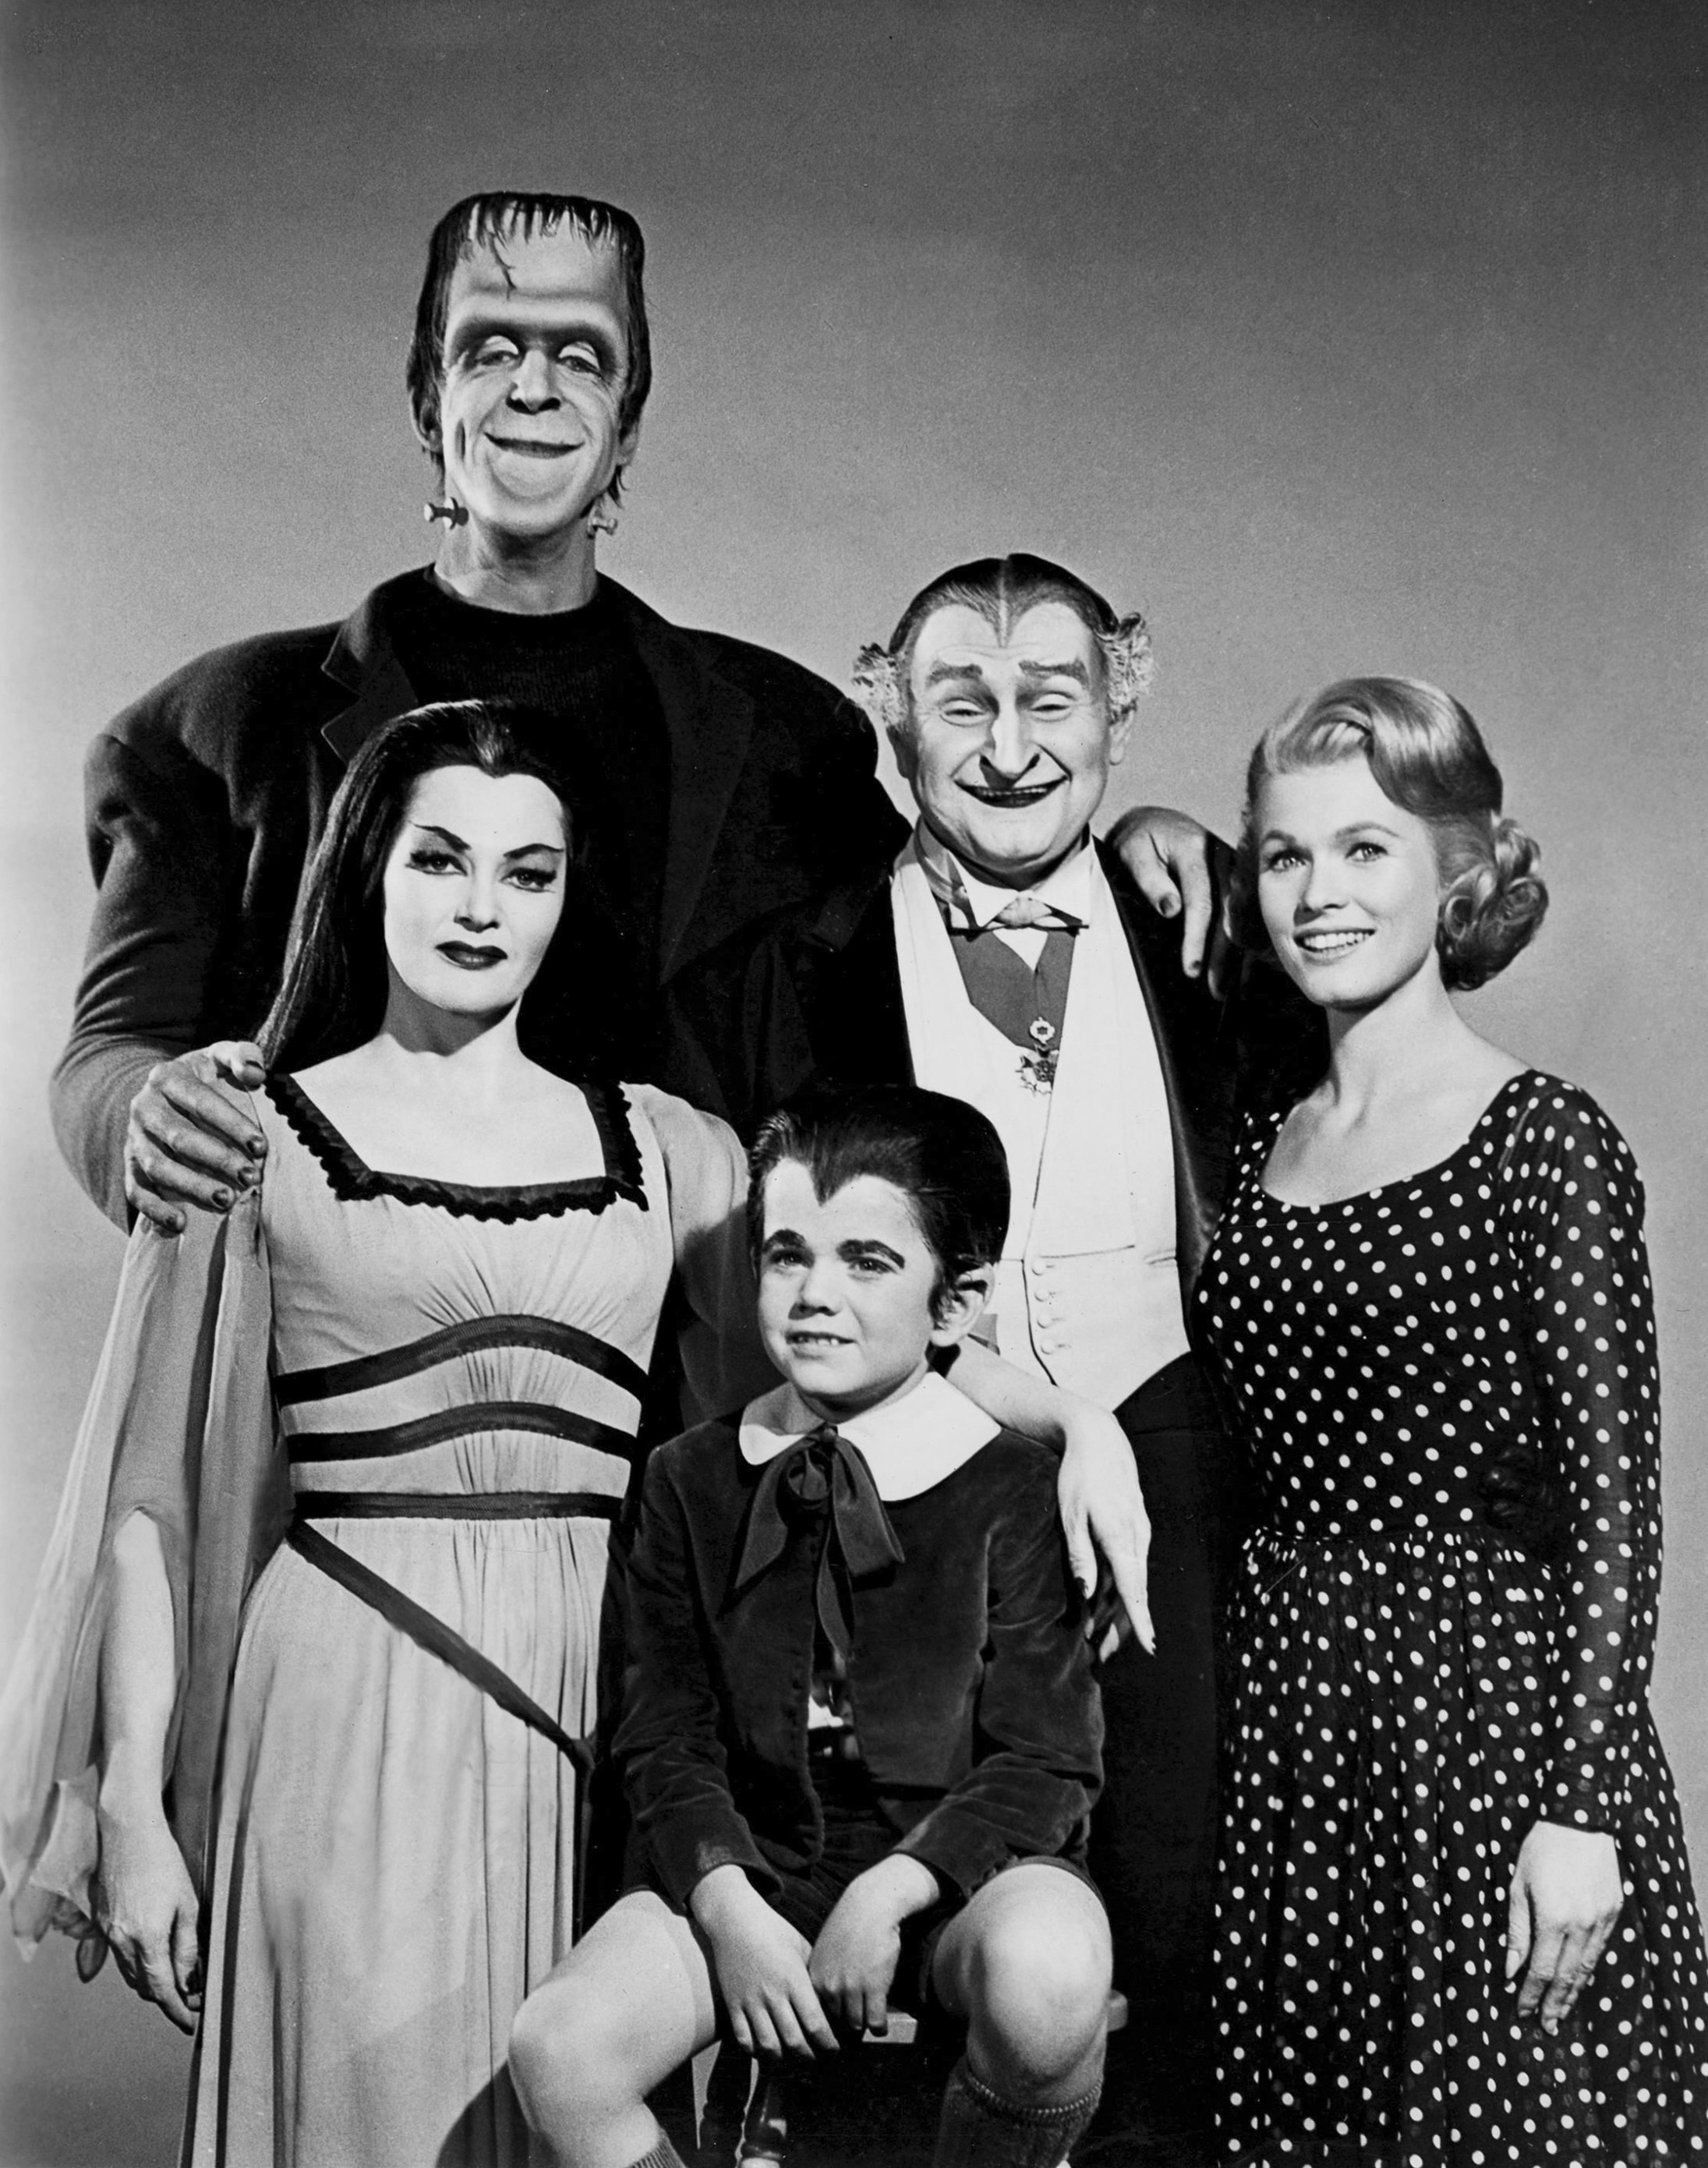 The Munsters Tv Series Movies Spin Offs And Merchandise Article Movies And Mania